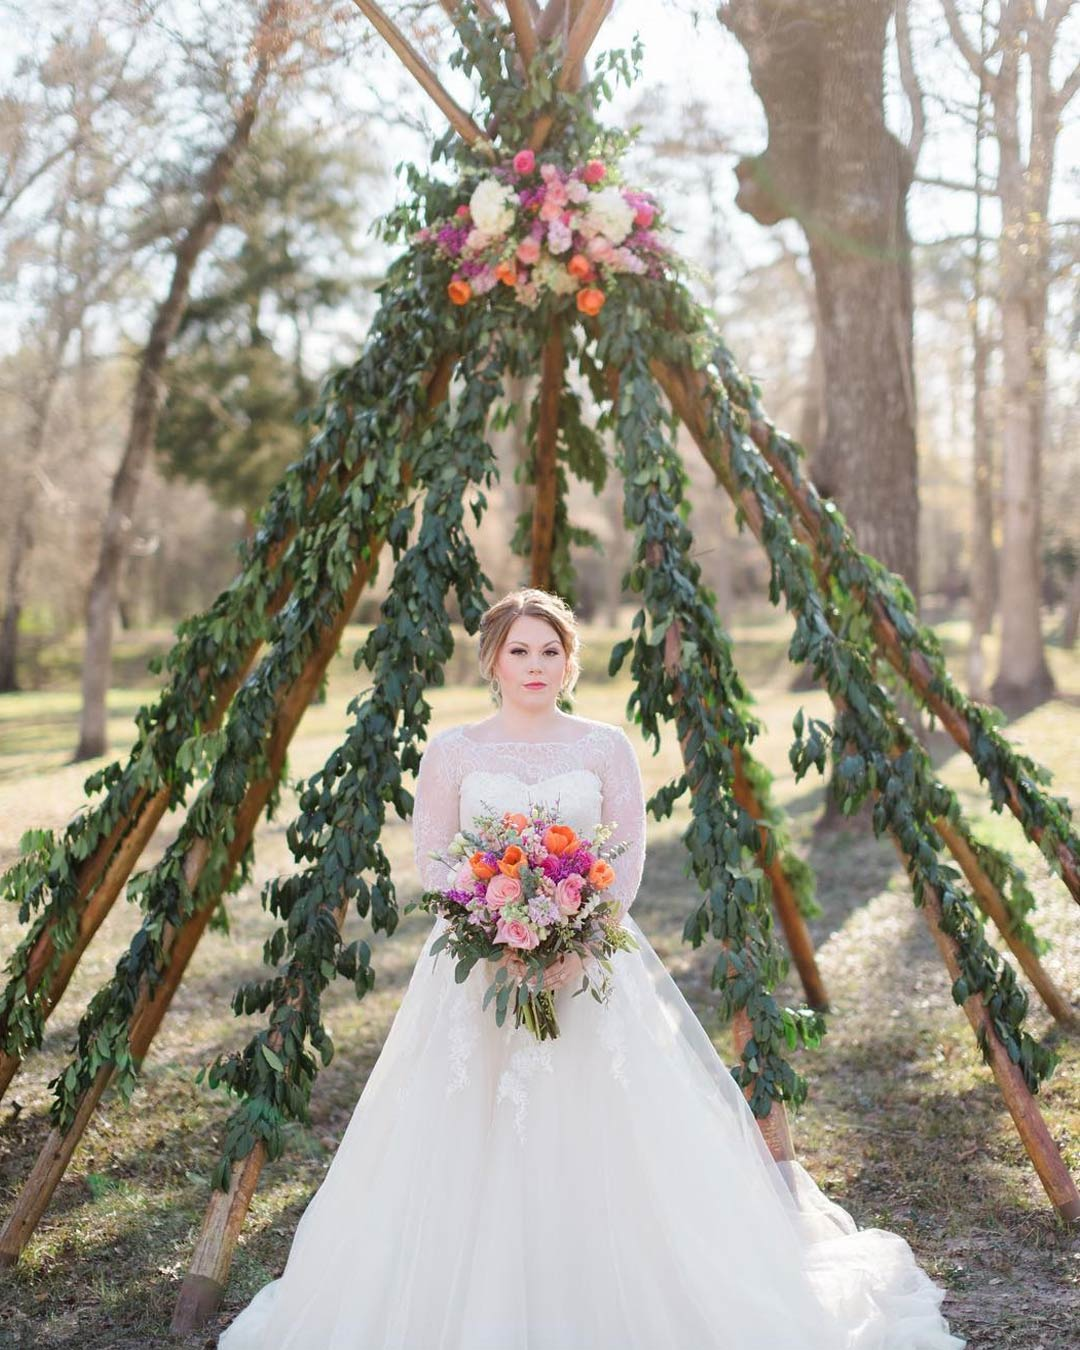 rustic wedding ideas bride dress flowers bouquet wooden arch greenery backdrop